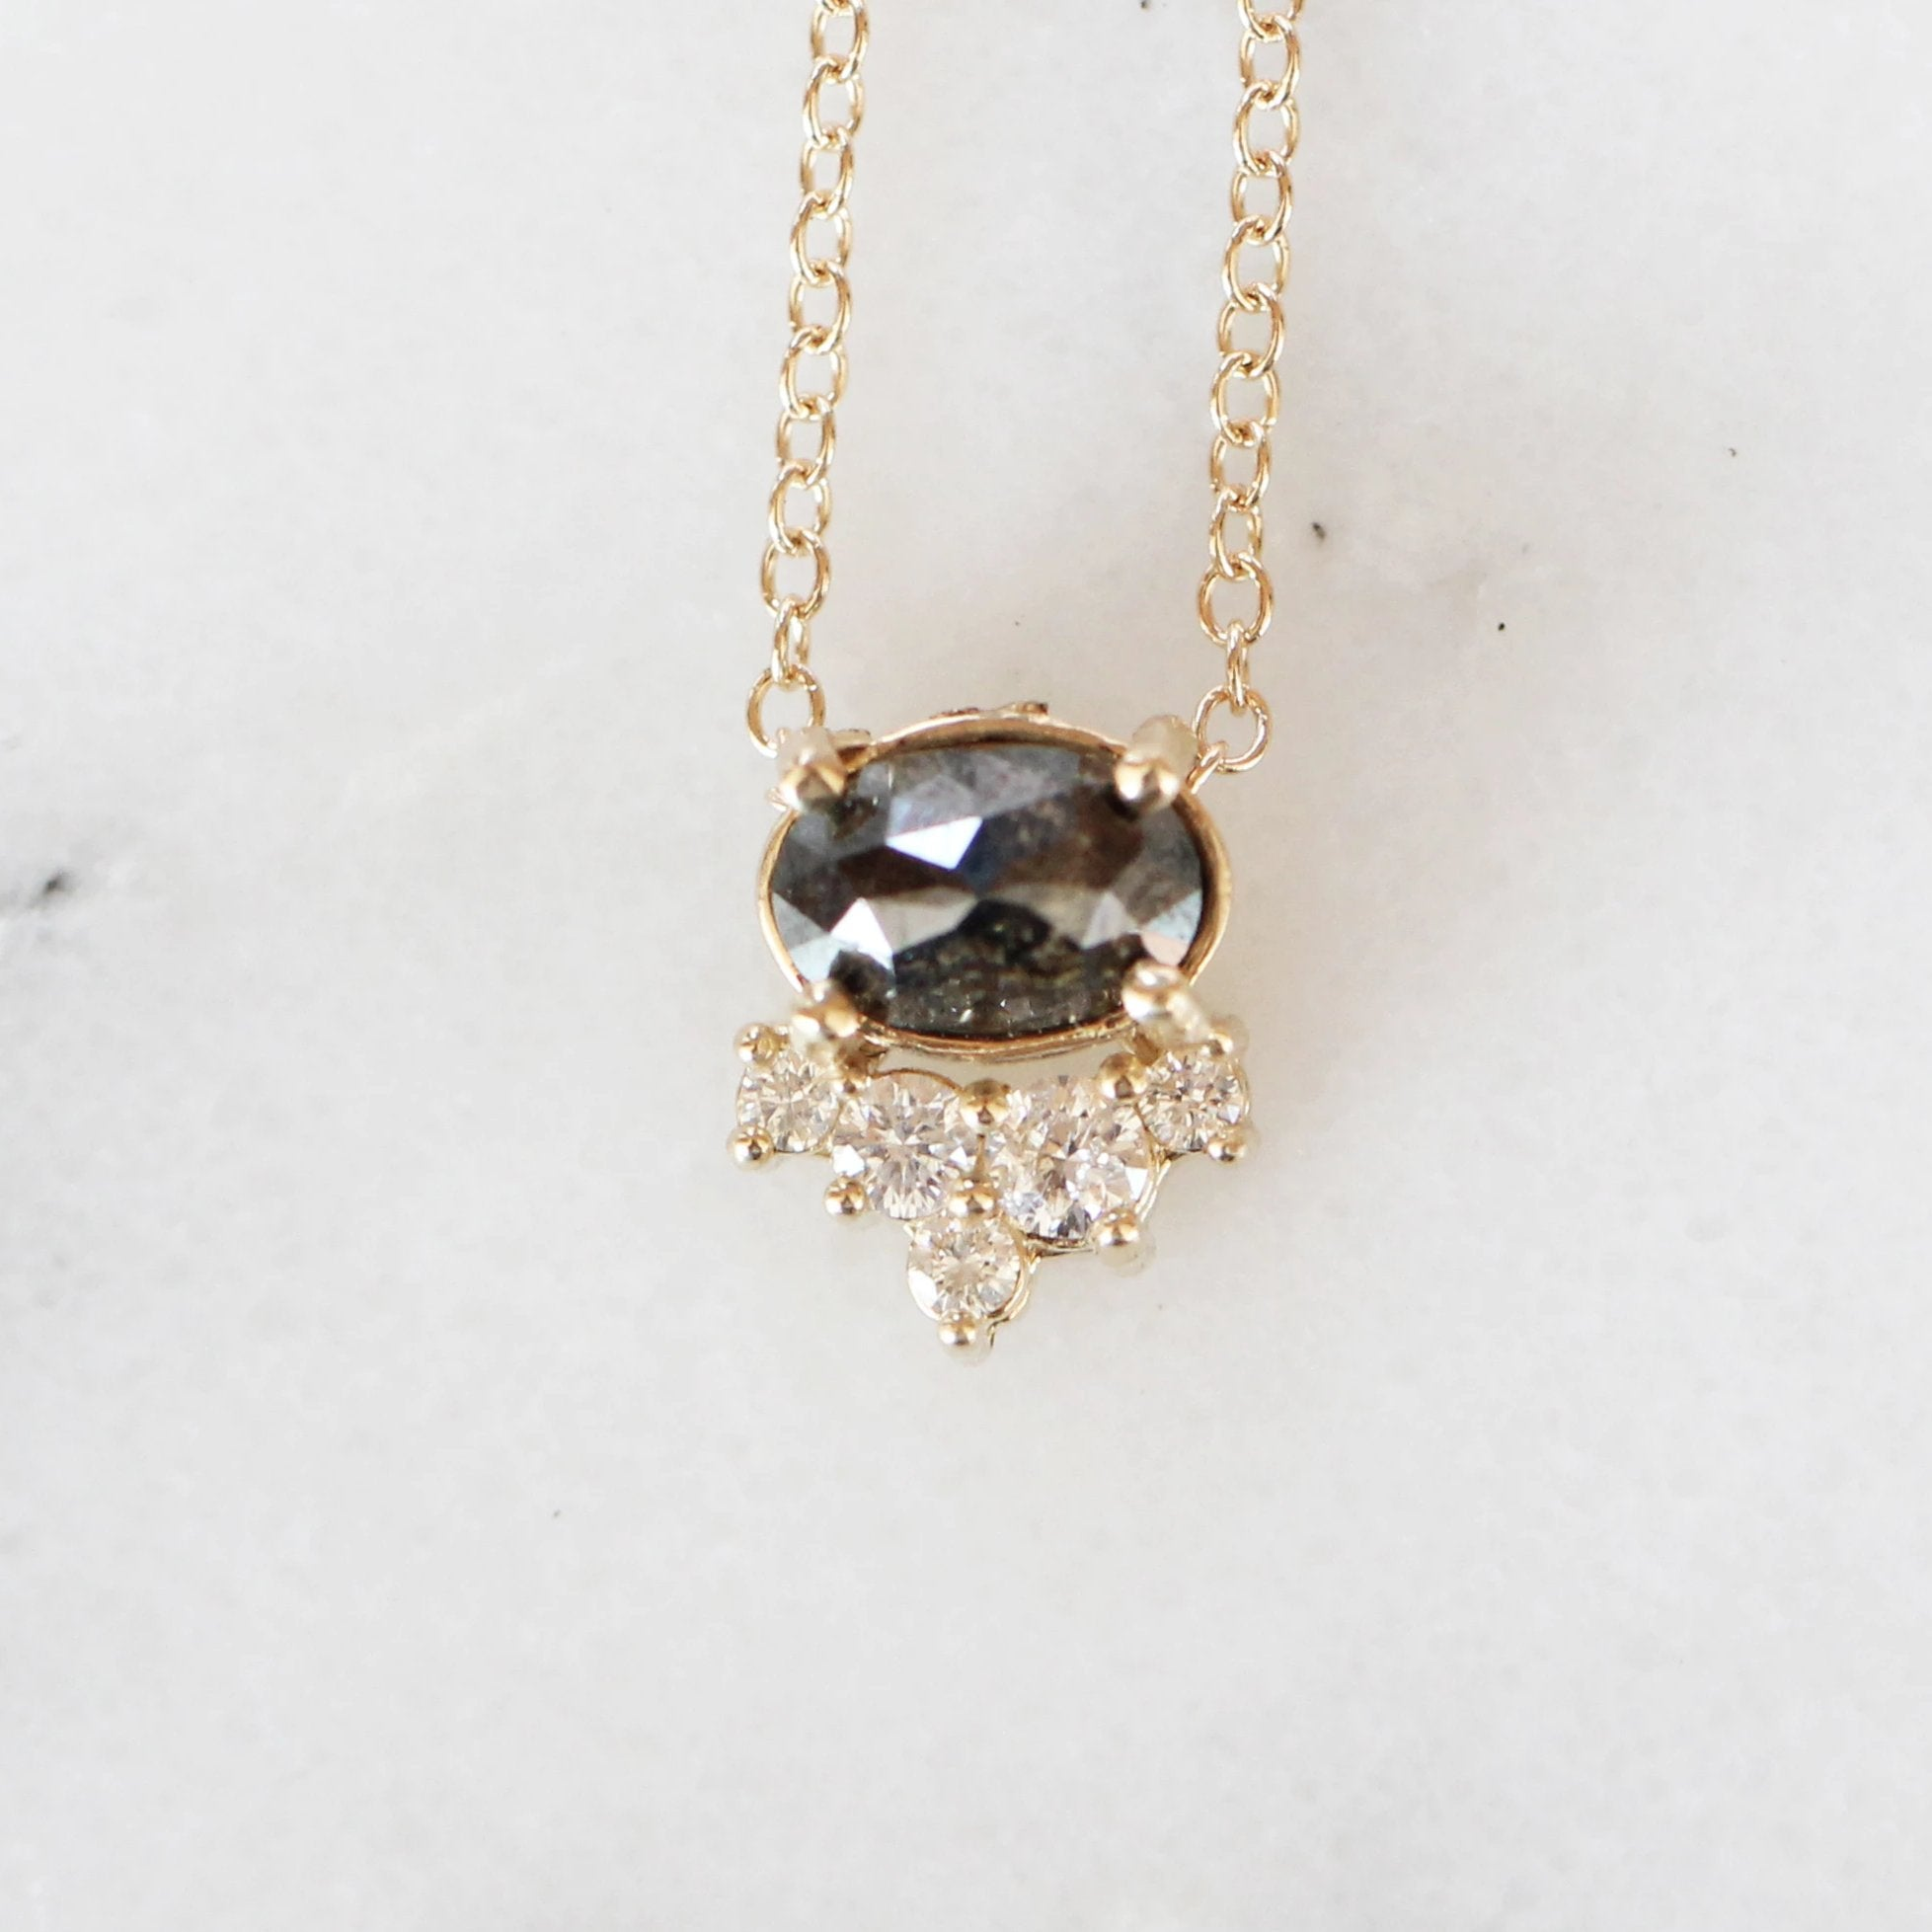 Allie - Petite Black Oval Diamond 14k Yellow Gold Necklace - Ready to Ship